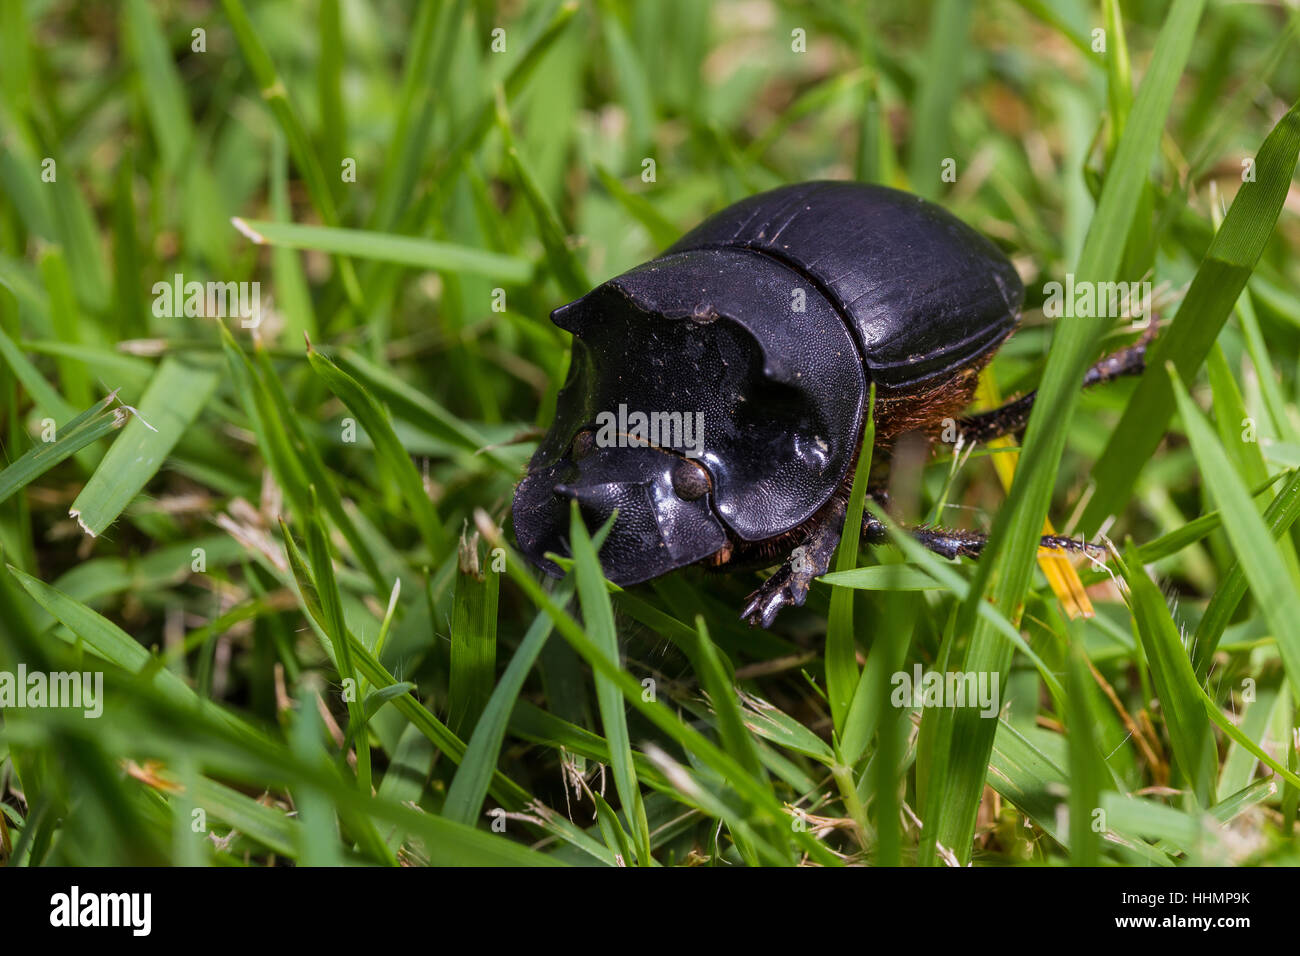 Beetle, Tri Horned Beetle (Catharsius molossus) on the ground Stock Photo